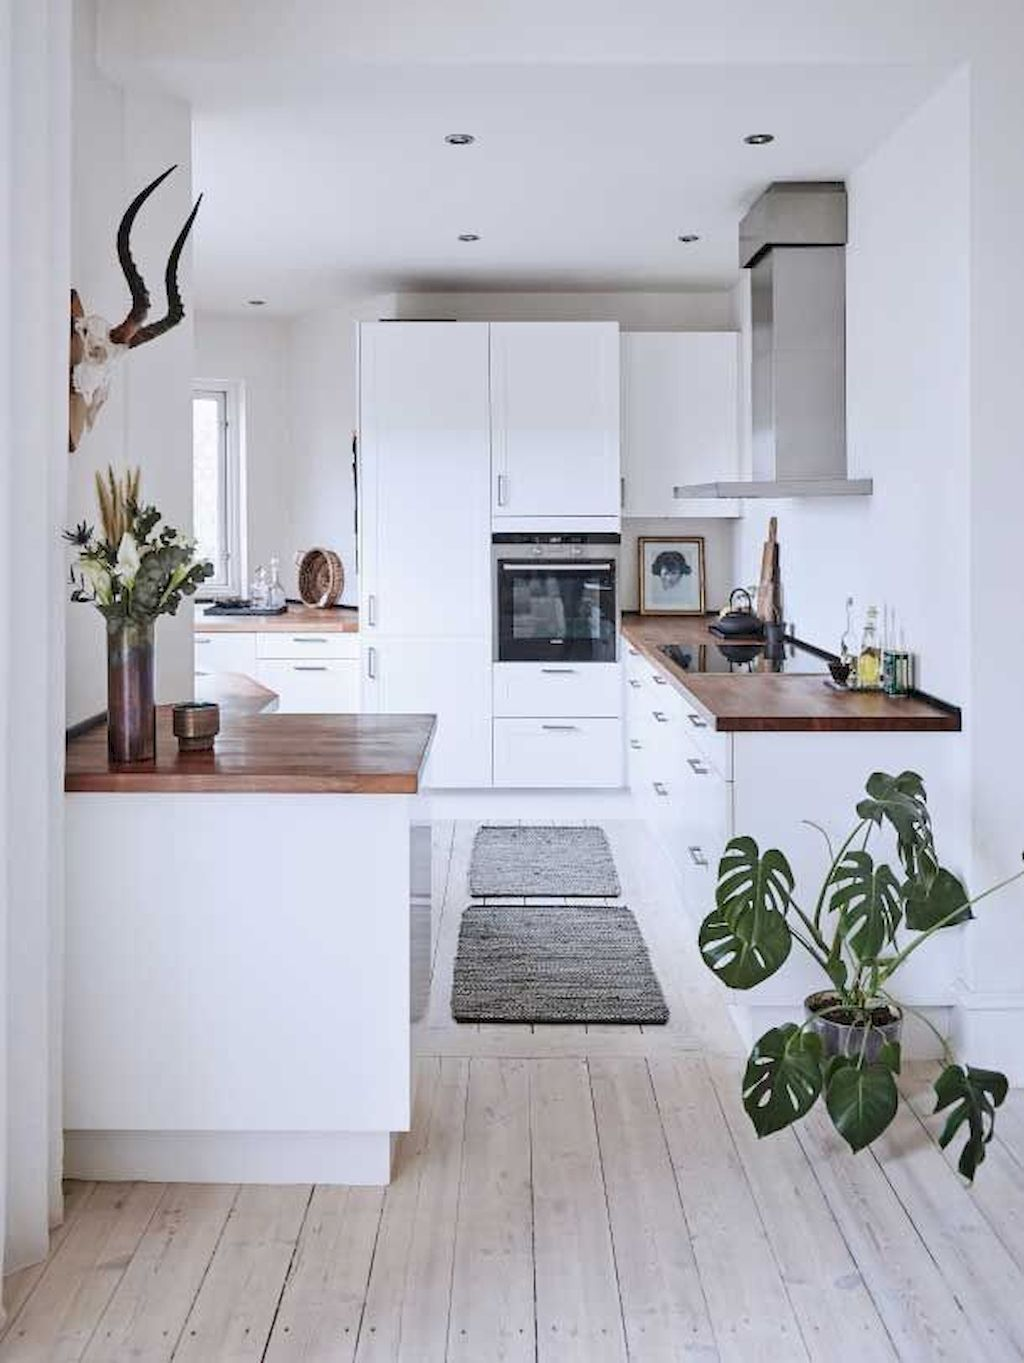 100 Small Scandinavian Kitchen Design Https Carrebianhome Com 100 Small Scandinavian Scandinavian Kitchen Design Kitchen Design Small Kitchen Remodel Small